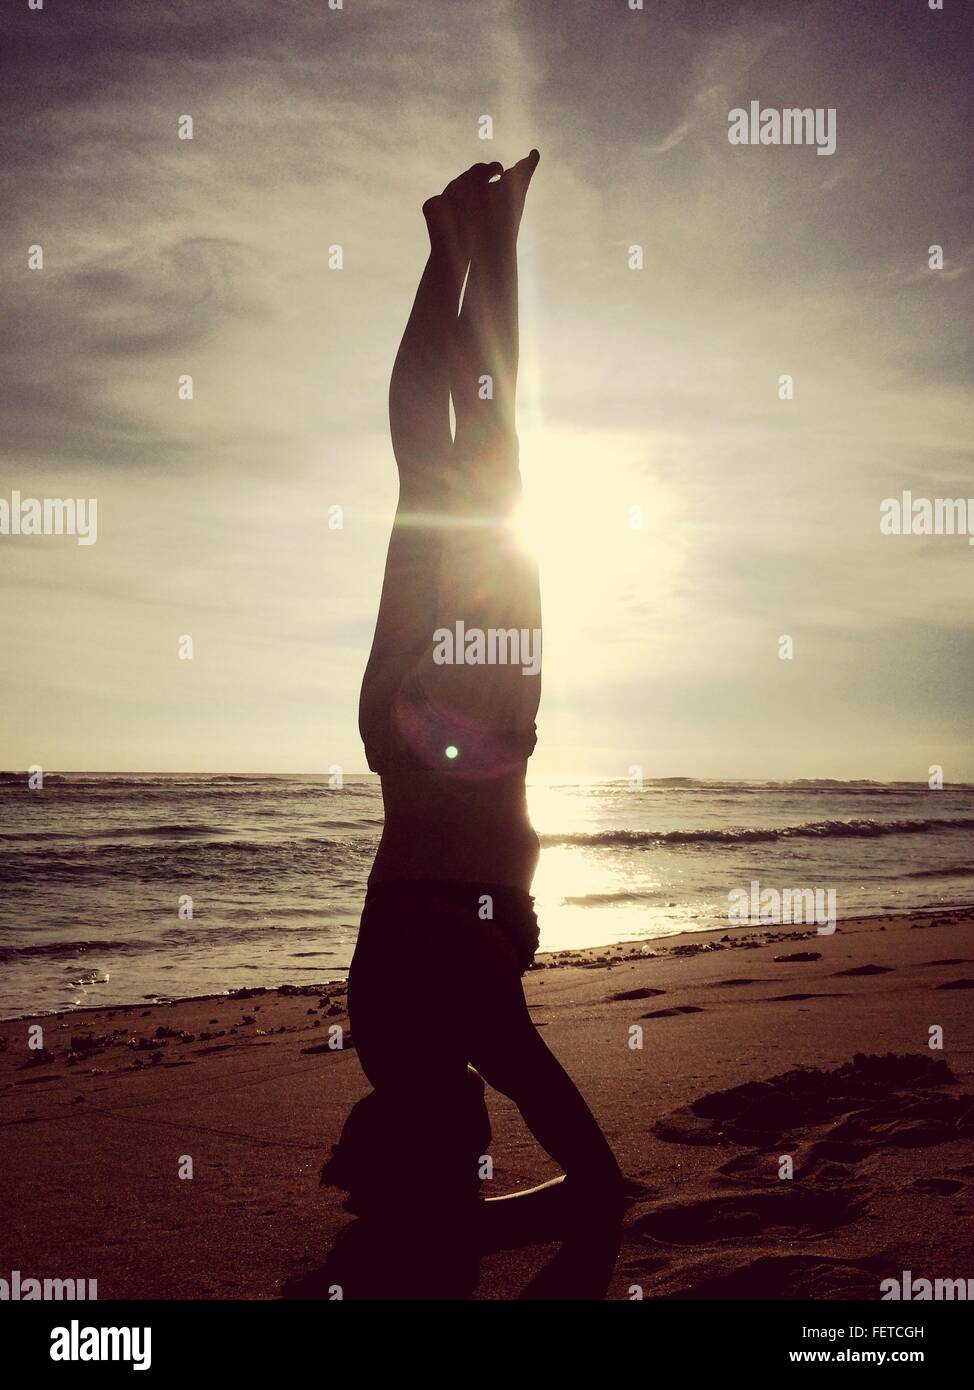 Silhouette Woman Performing Headstand On Beach - Stock Image